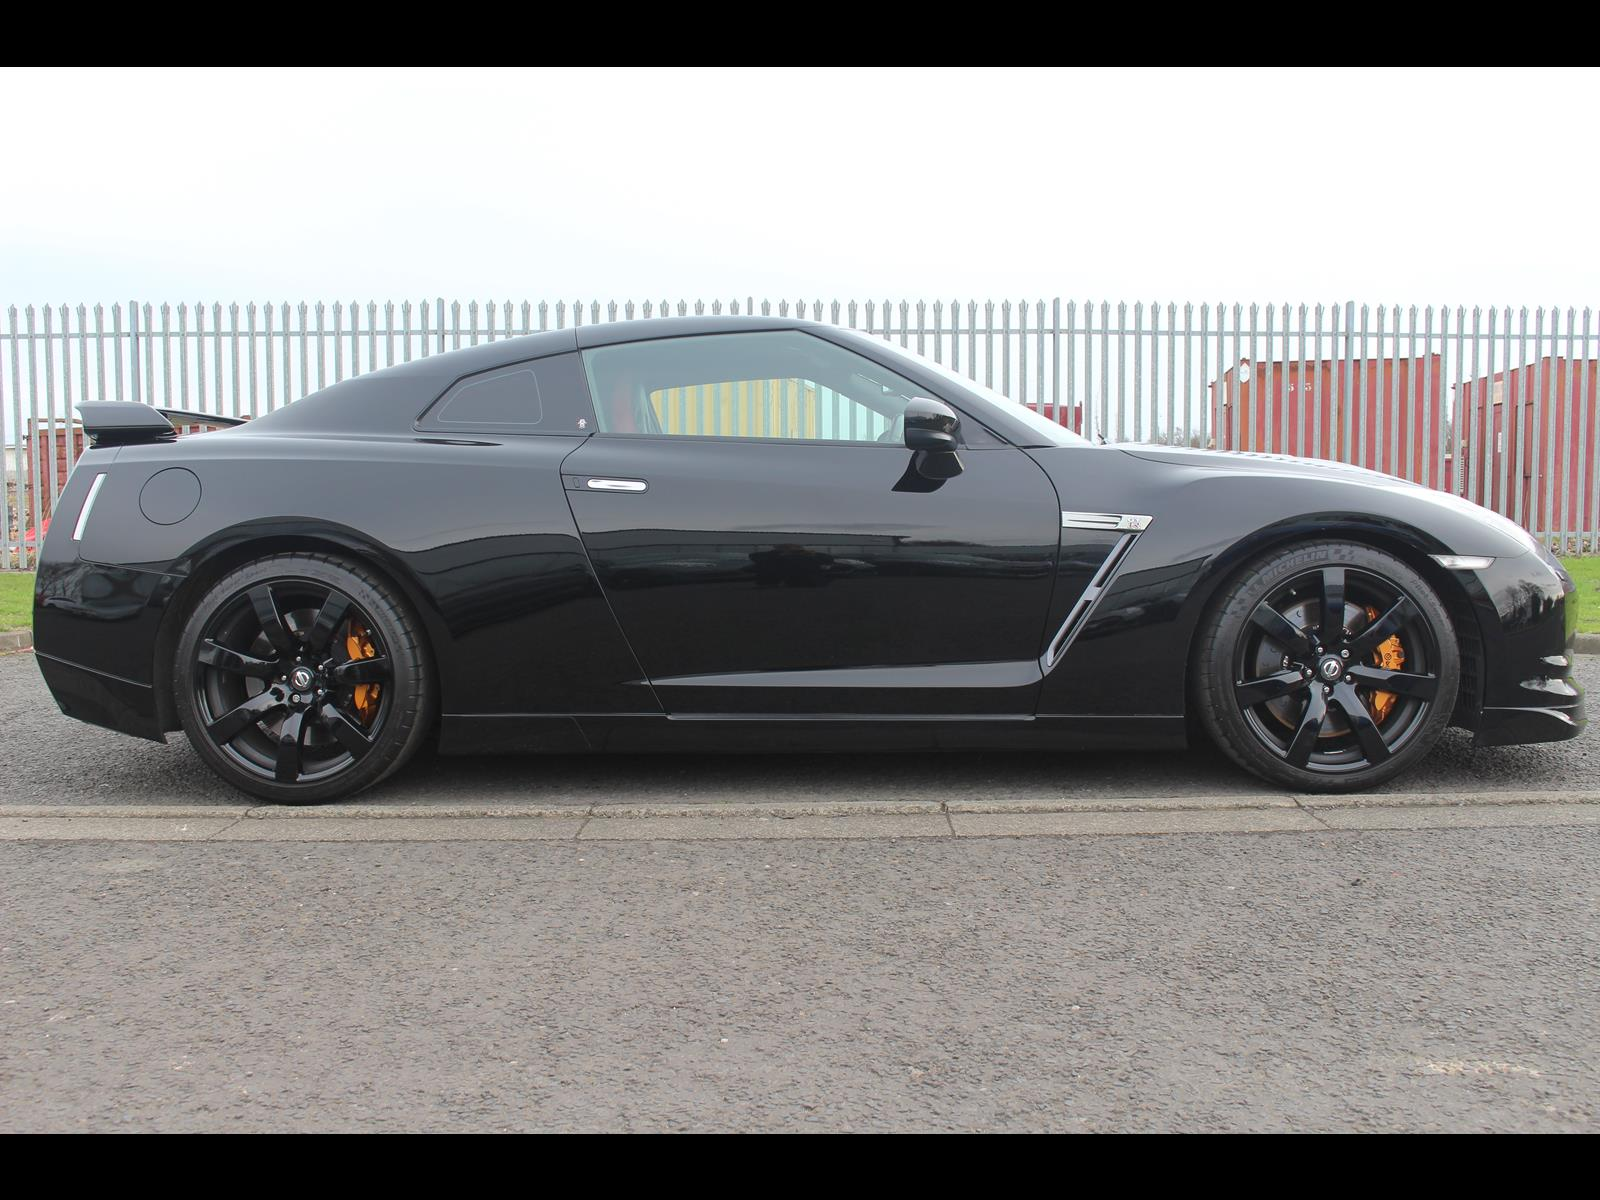 2009 nissan r35 gtr uk model black edition stage 4 tuned. Black Bedroom Furniture Sets. Home Design Ideas